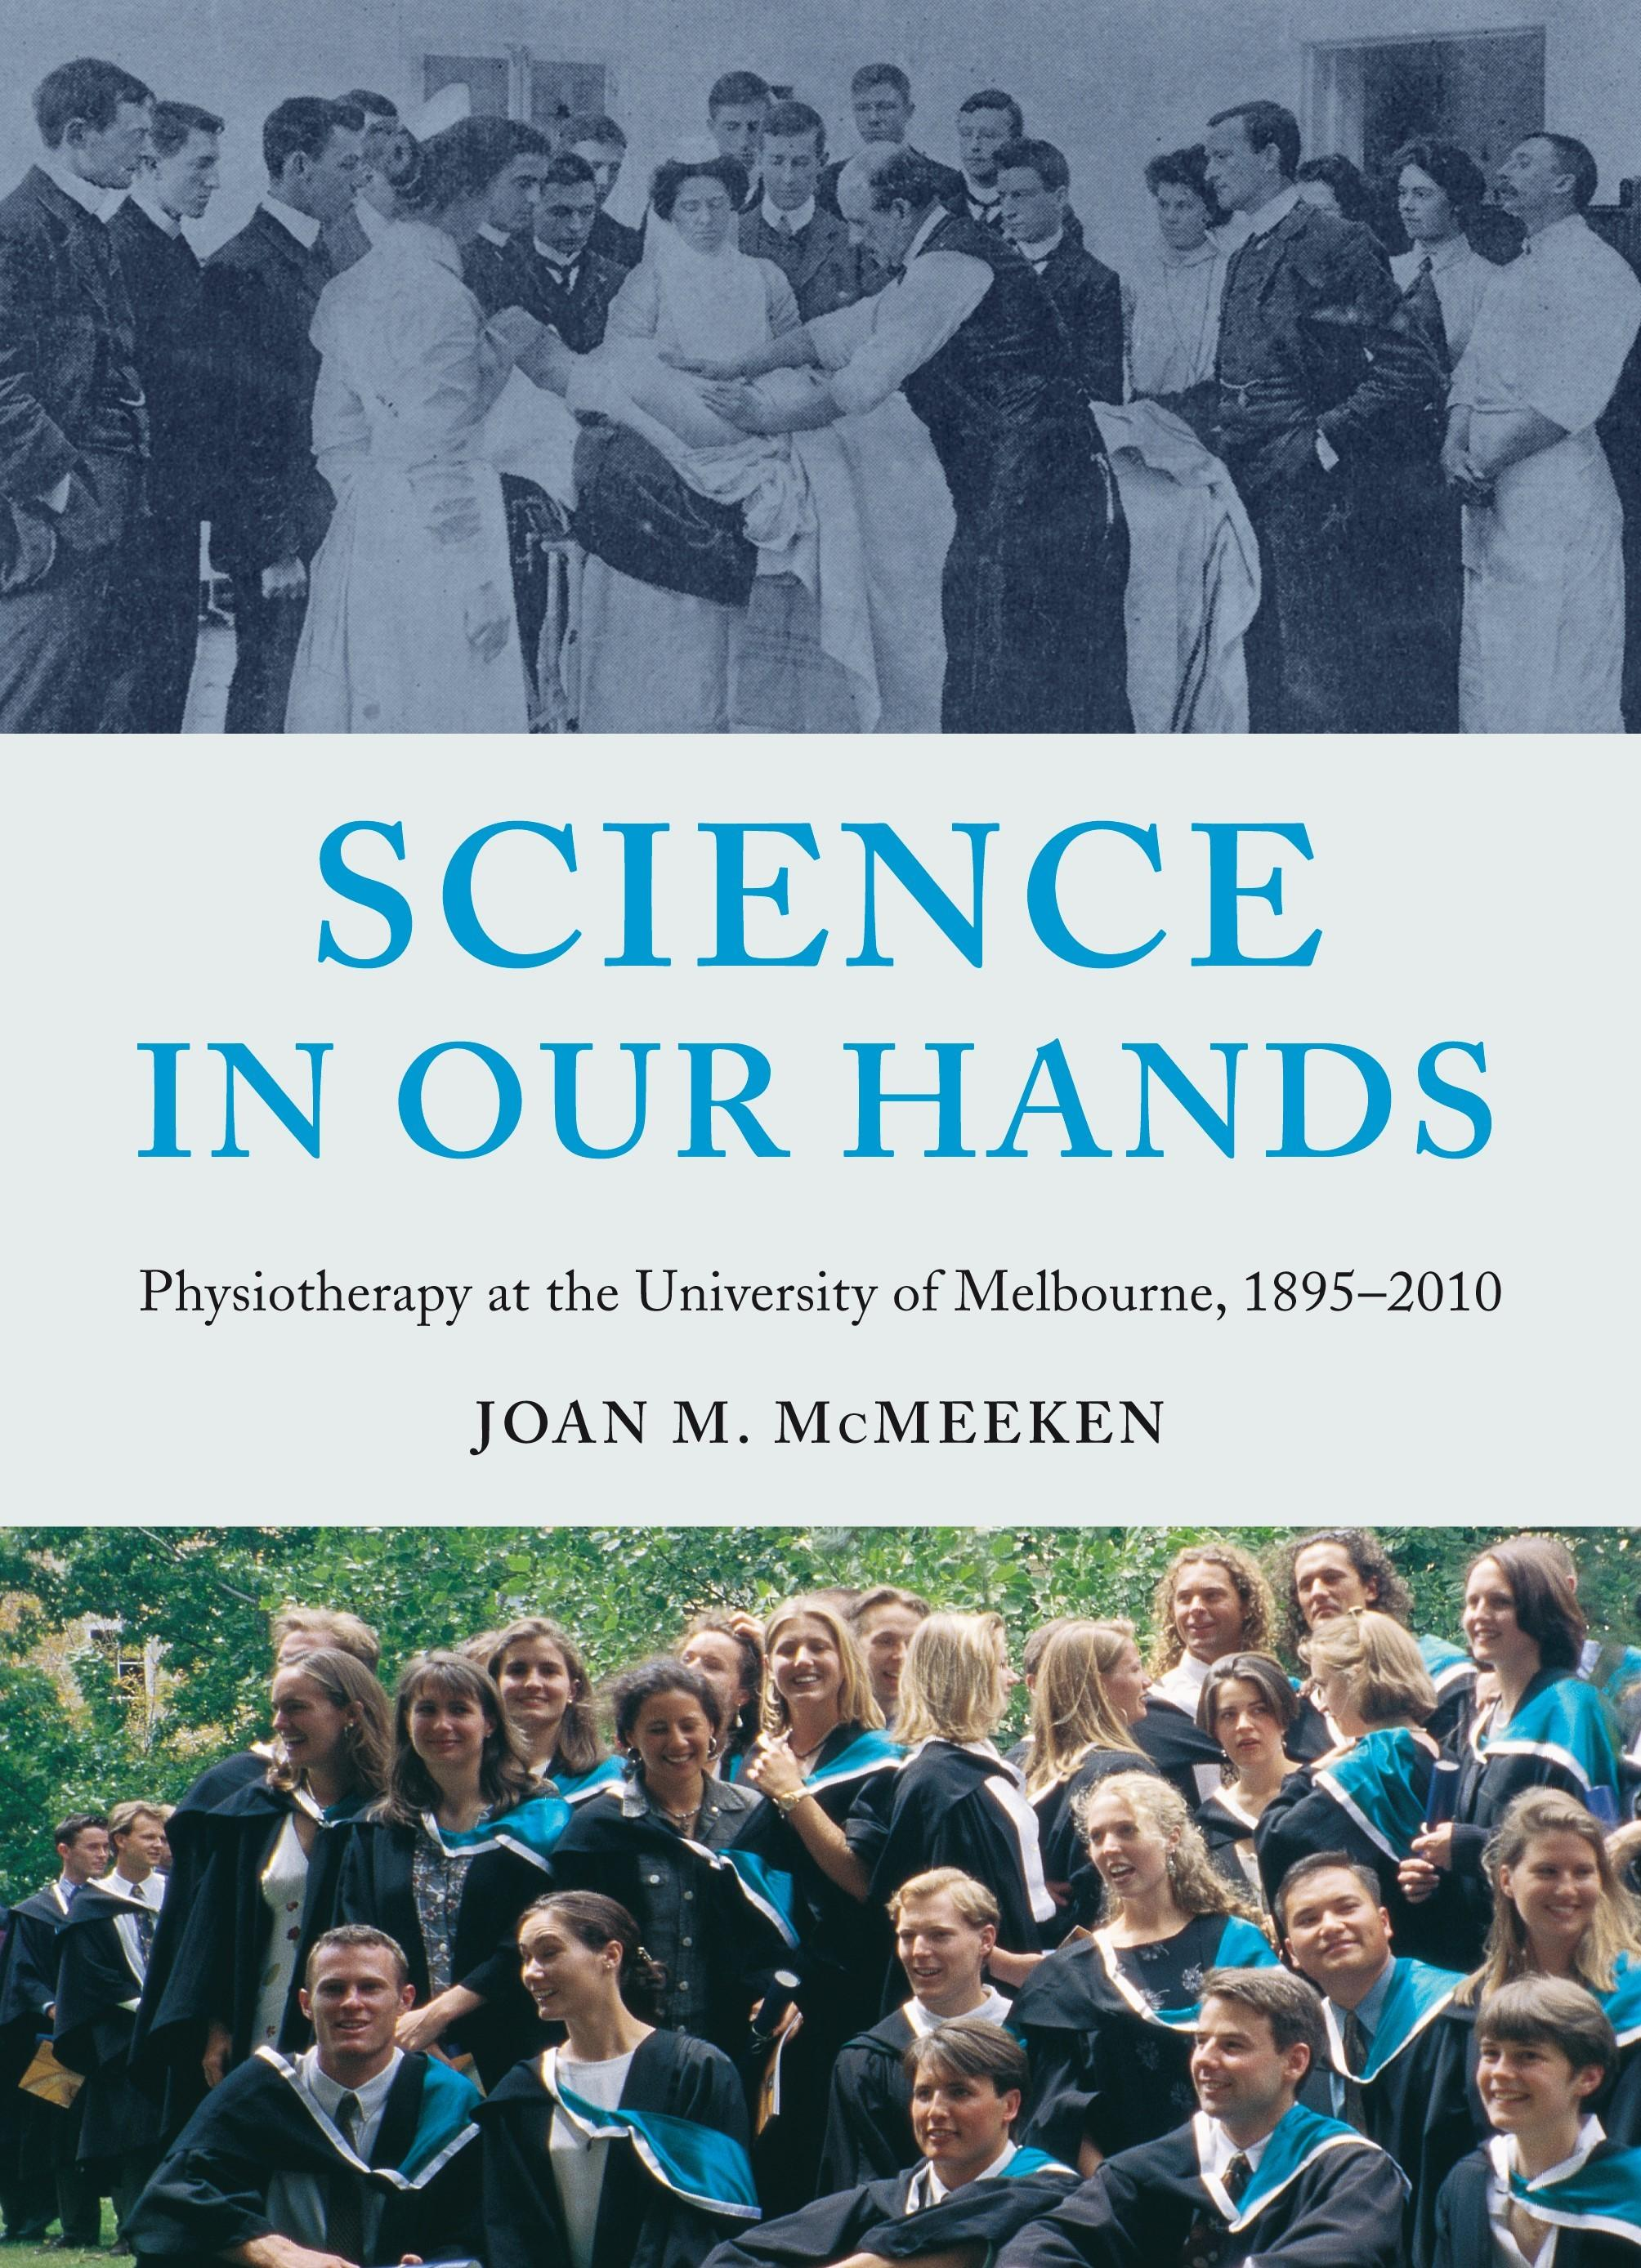 Science In Our Hands Physiotherapy At UniMelb1895-2010